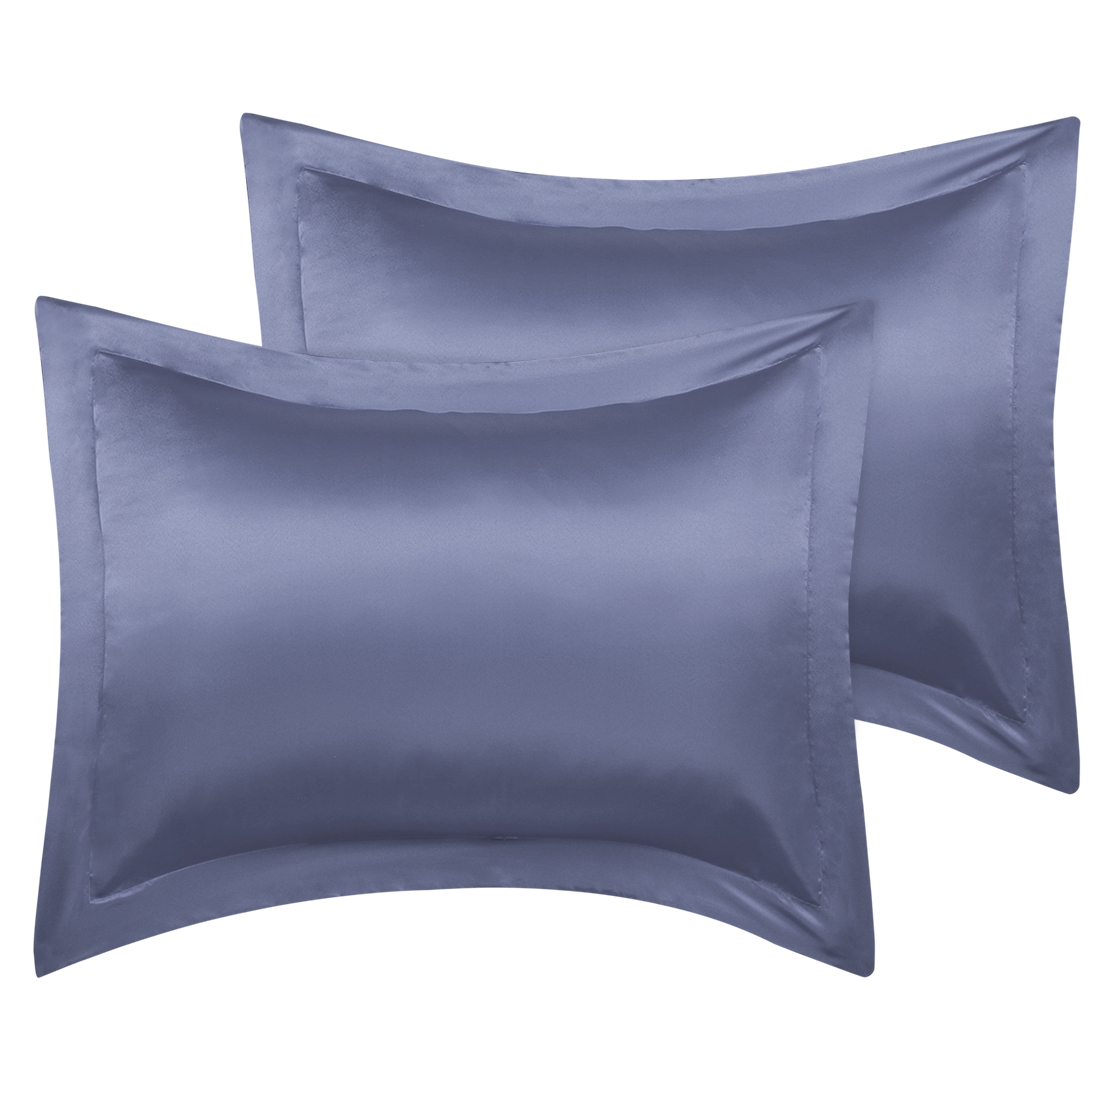 2 Pcs Slate Gray Pillow Shams Satin Pillow Cases Queen Oxford Pillowcases